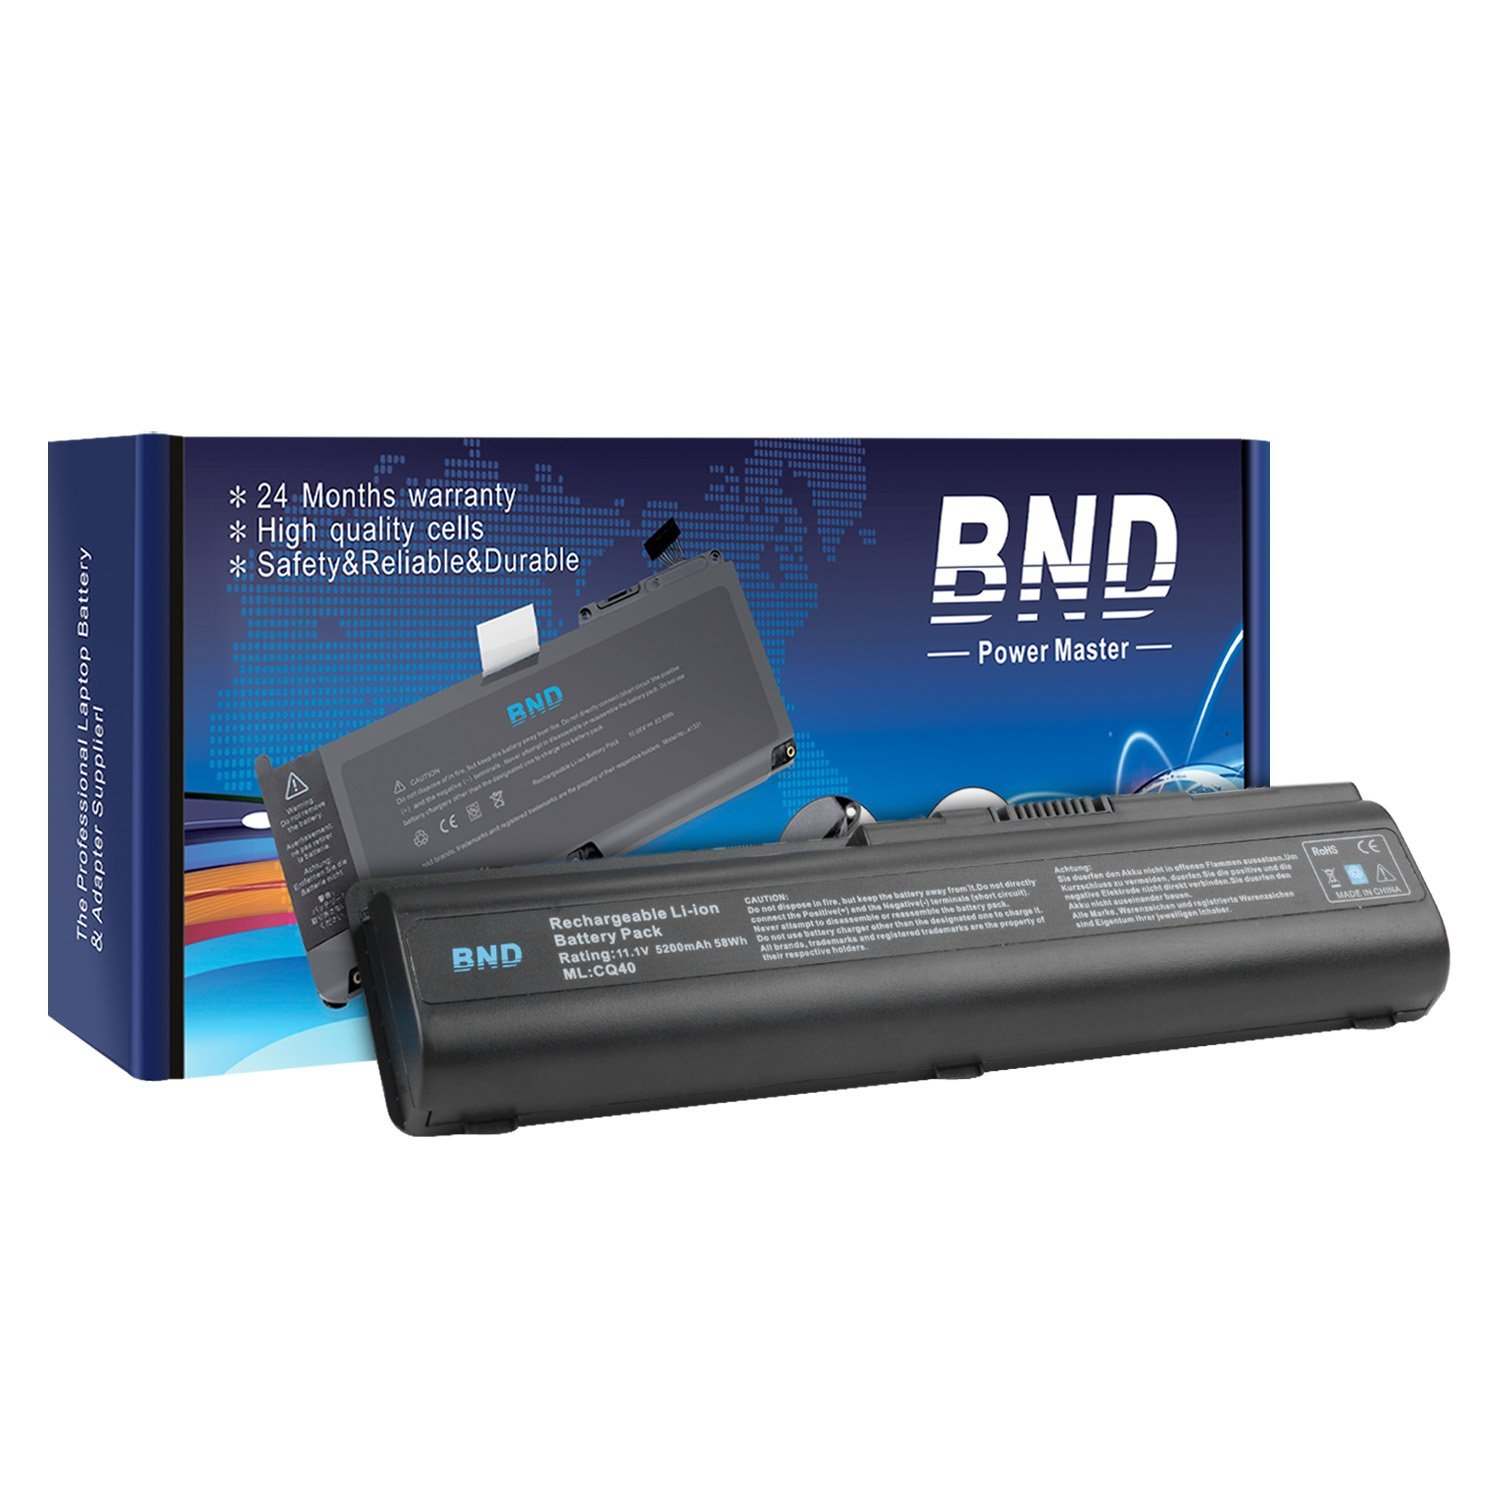 BND Laptop Battery [with Samsung Cells] for HP Pavilion DV4-1000 DV4-2000 DV5-1000 DV6-1000 DV6-2000 CQ50 CQ60 CQ70 G50 G60 G60T G61 G70 G71, fits P/N 484170-001 EV06 KS524AA KS526AA HSTNN-IB72